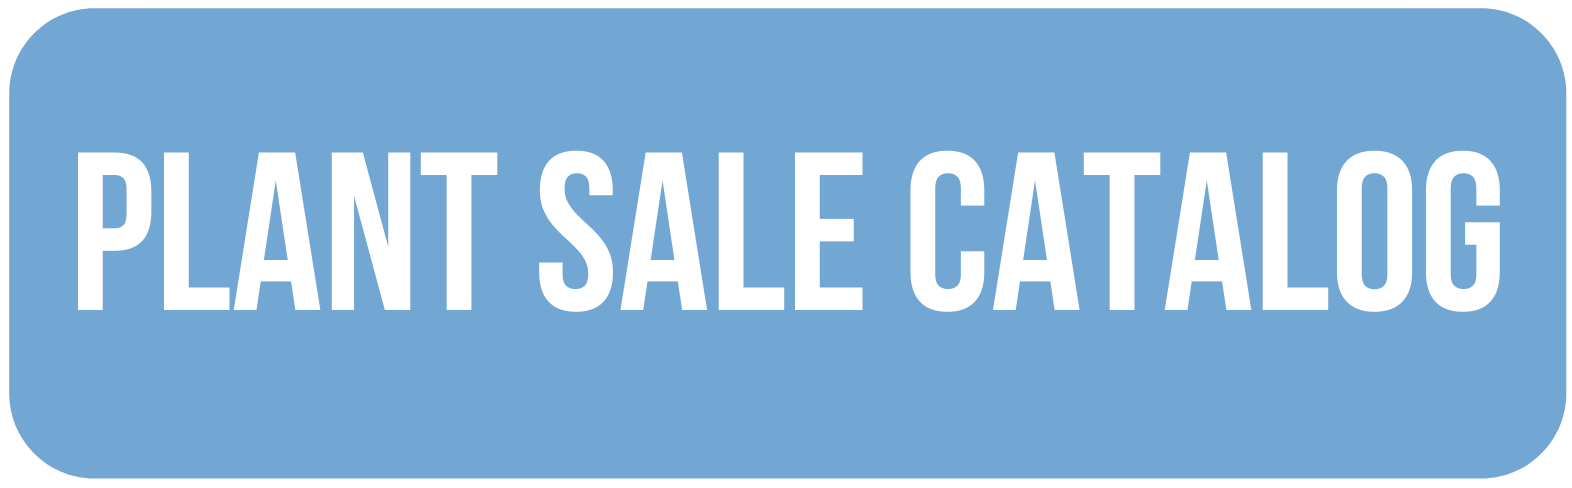 Plant-Sale-Catalog-Button